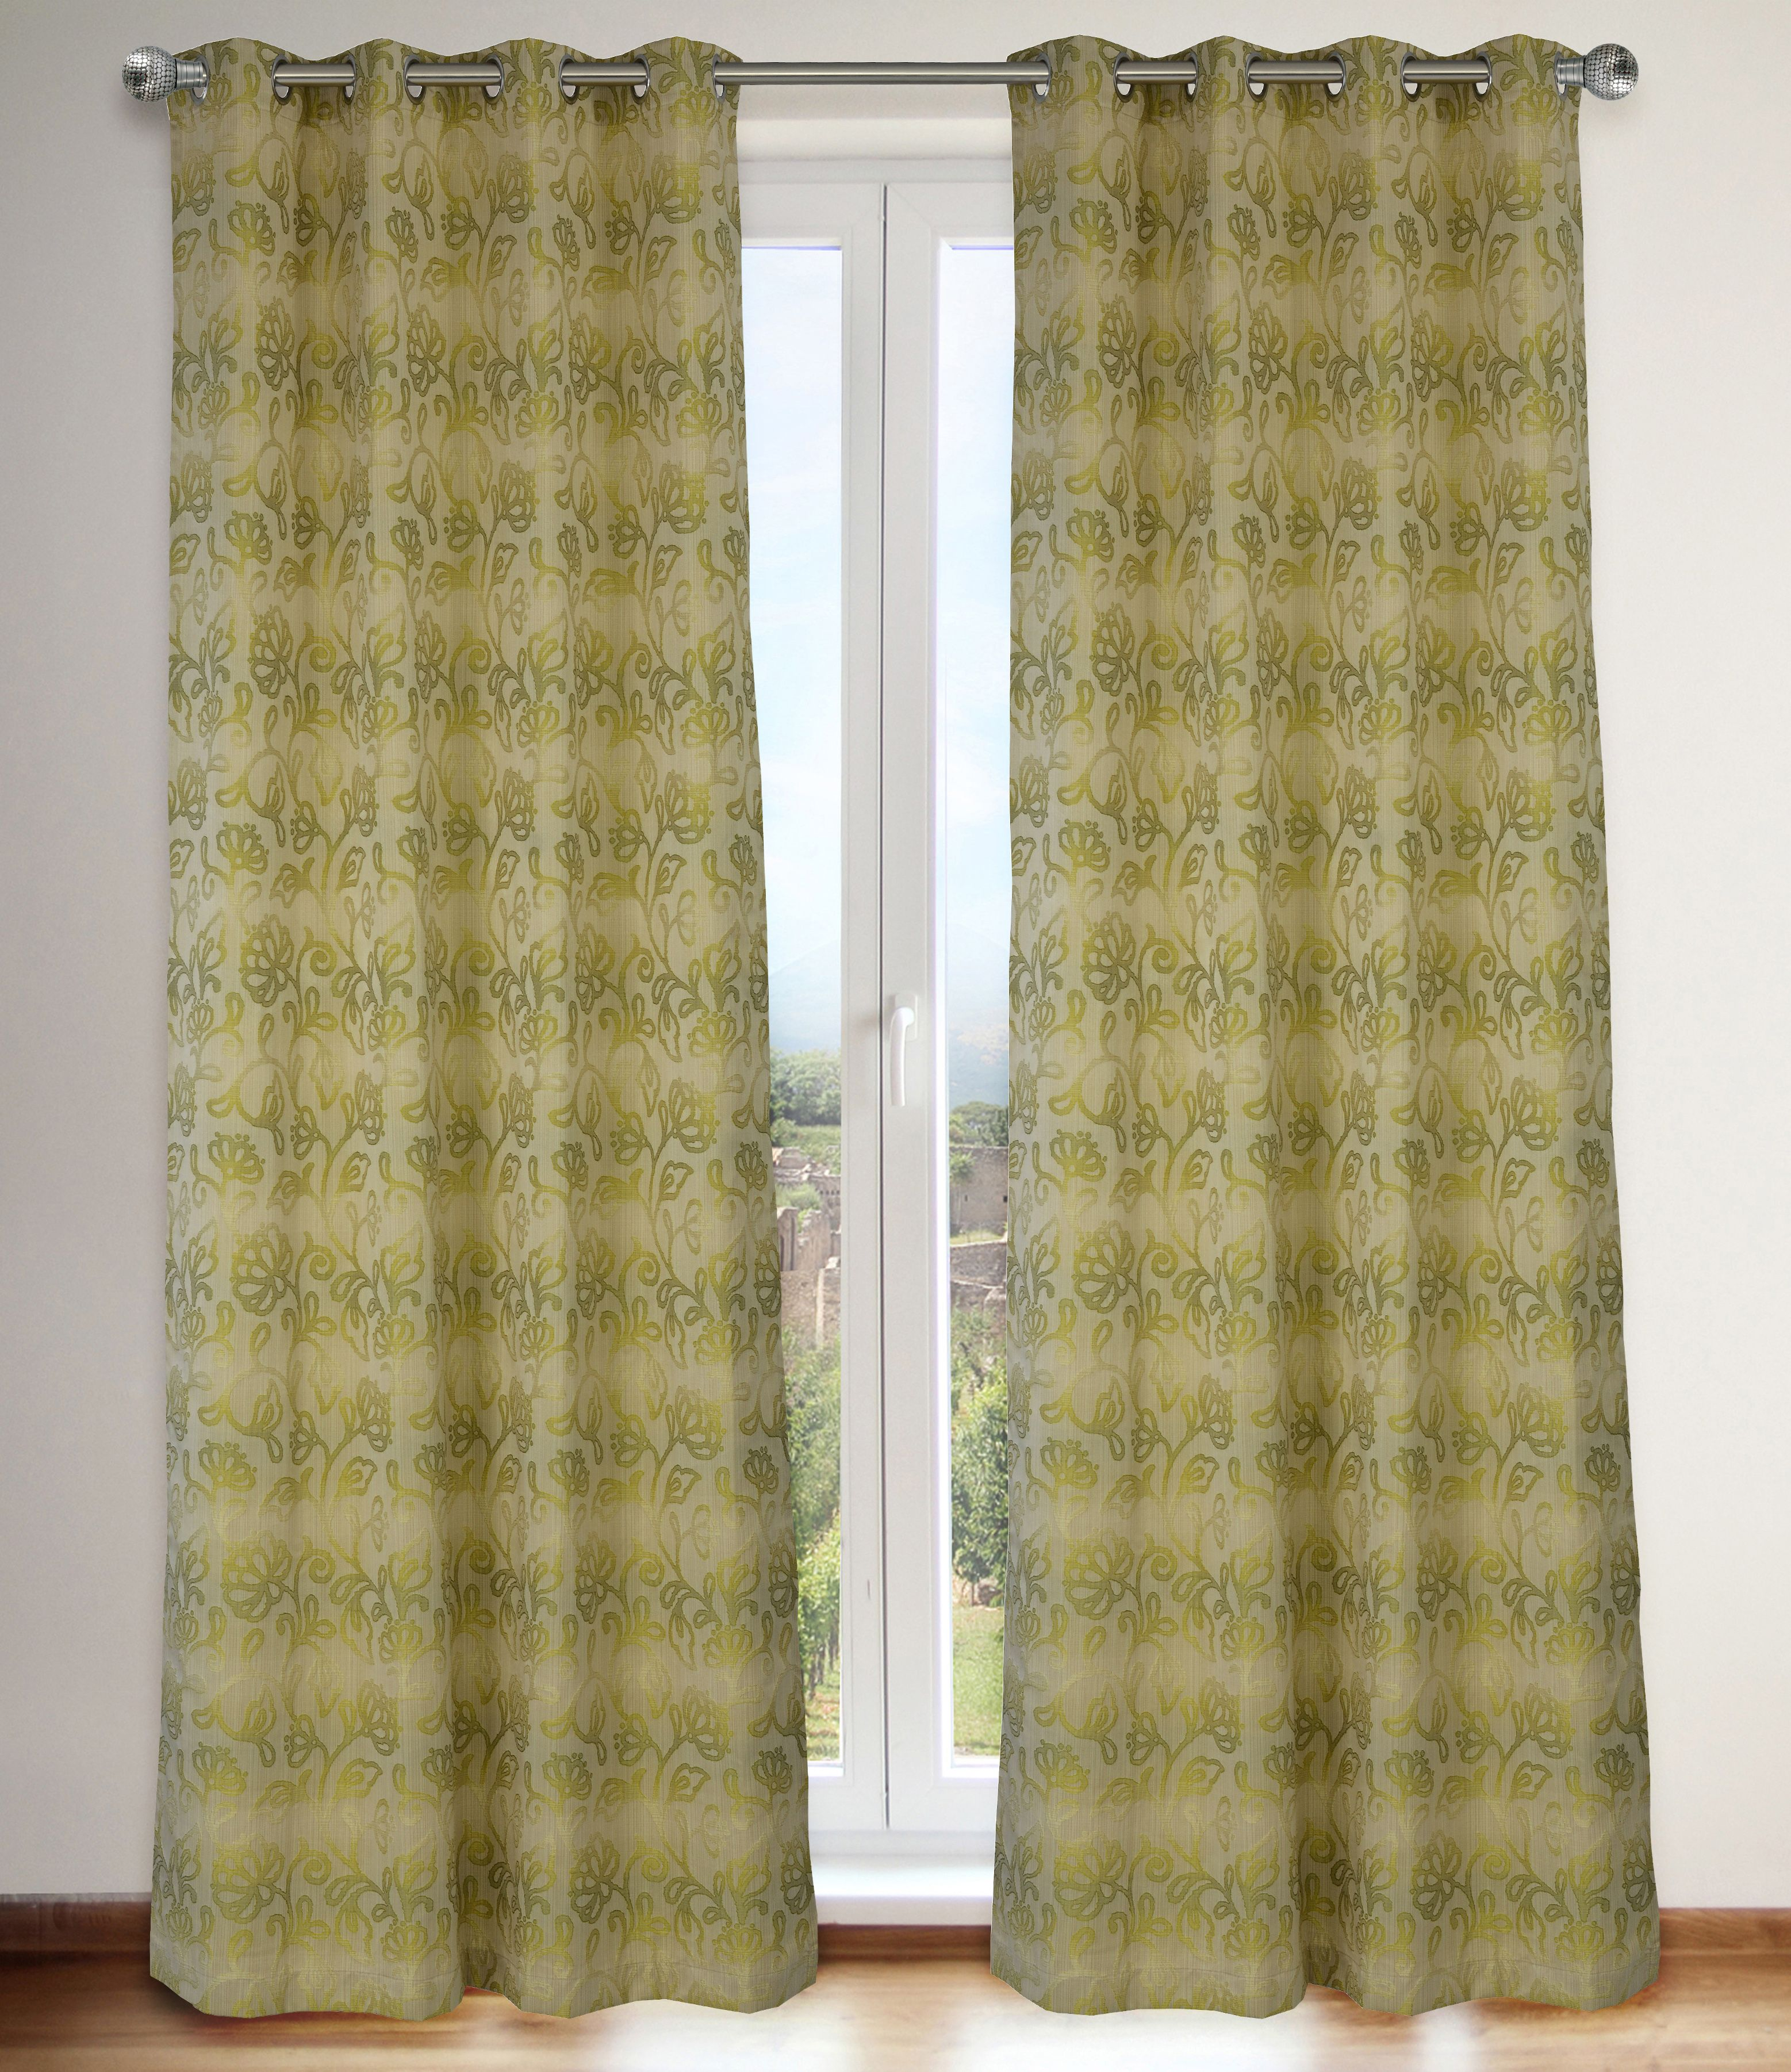 LJ Home Fashions Marli Floral Ombre Jacquard Grommet Curtain Panel Set Of